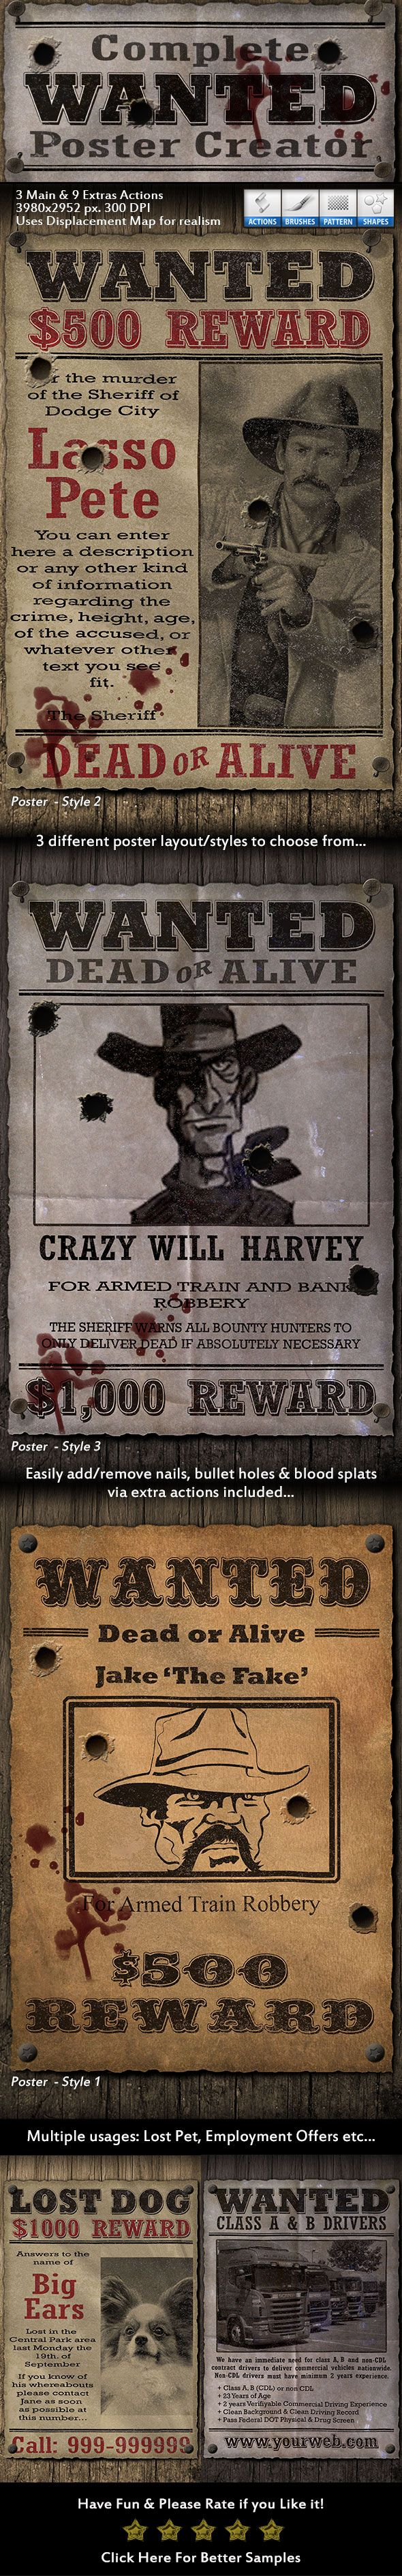 Complete Wanted Poster Creator  #western #bullet • Download ➝ https://graphicriver.net/item/complete-wanted-poster-creator/18046843?ref=pxcr